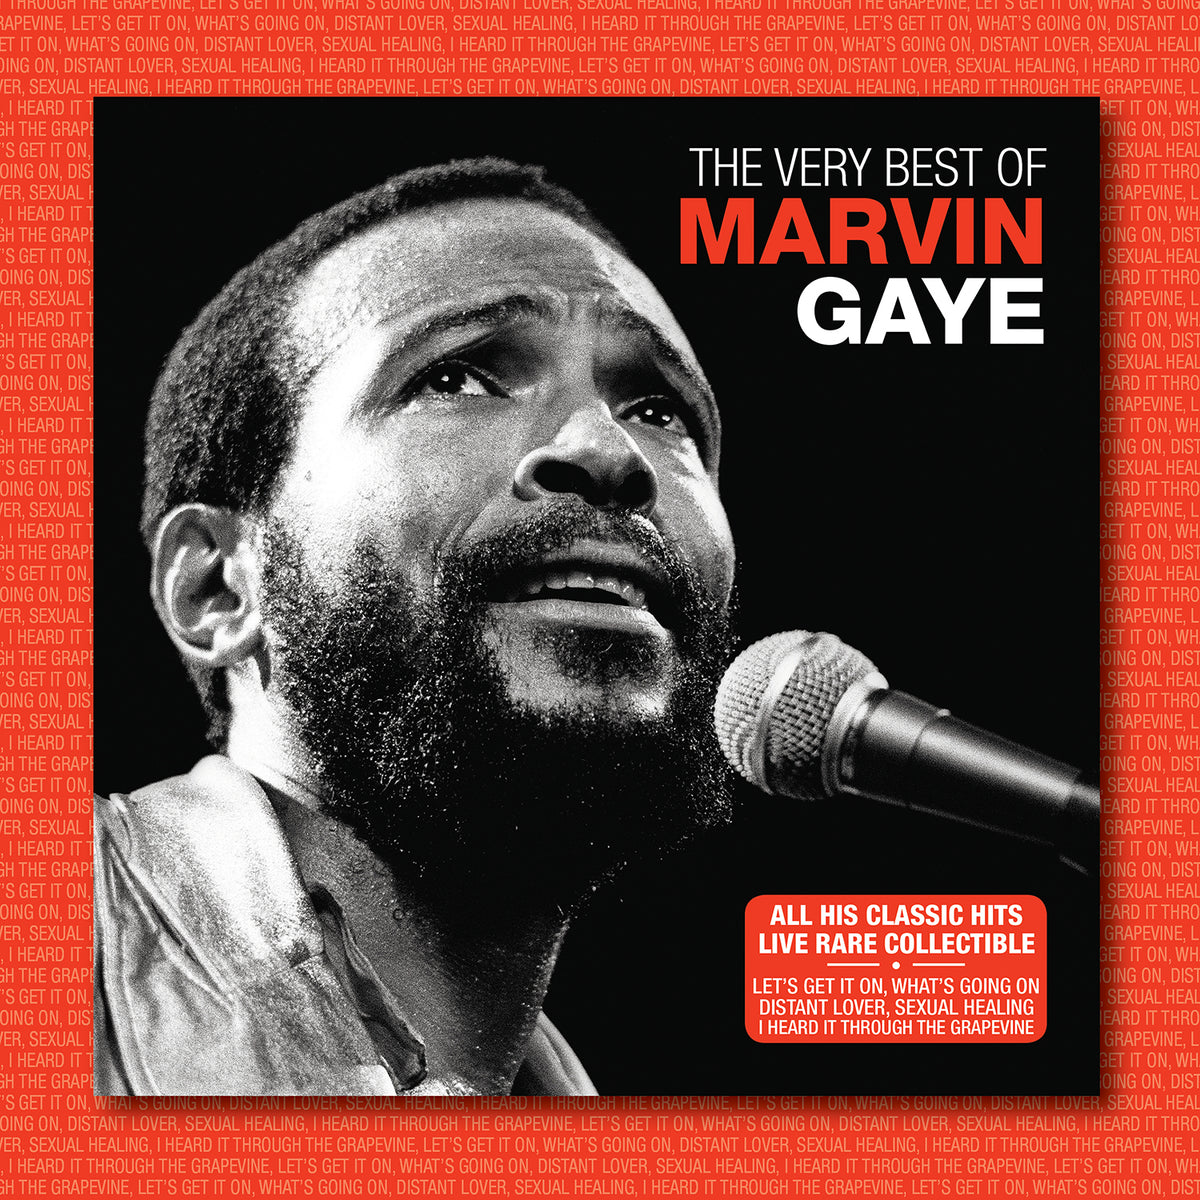 FANFARE229 - MARVIN GAYE - THE VERY BEST